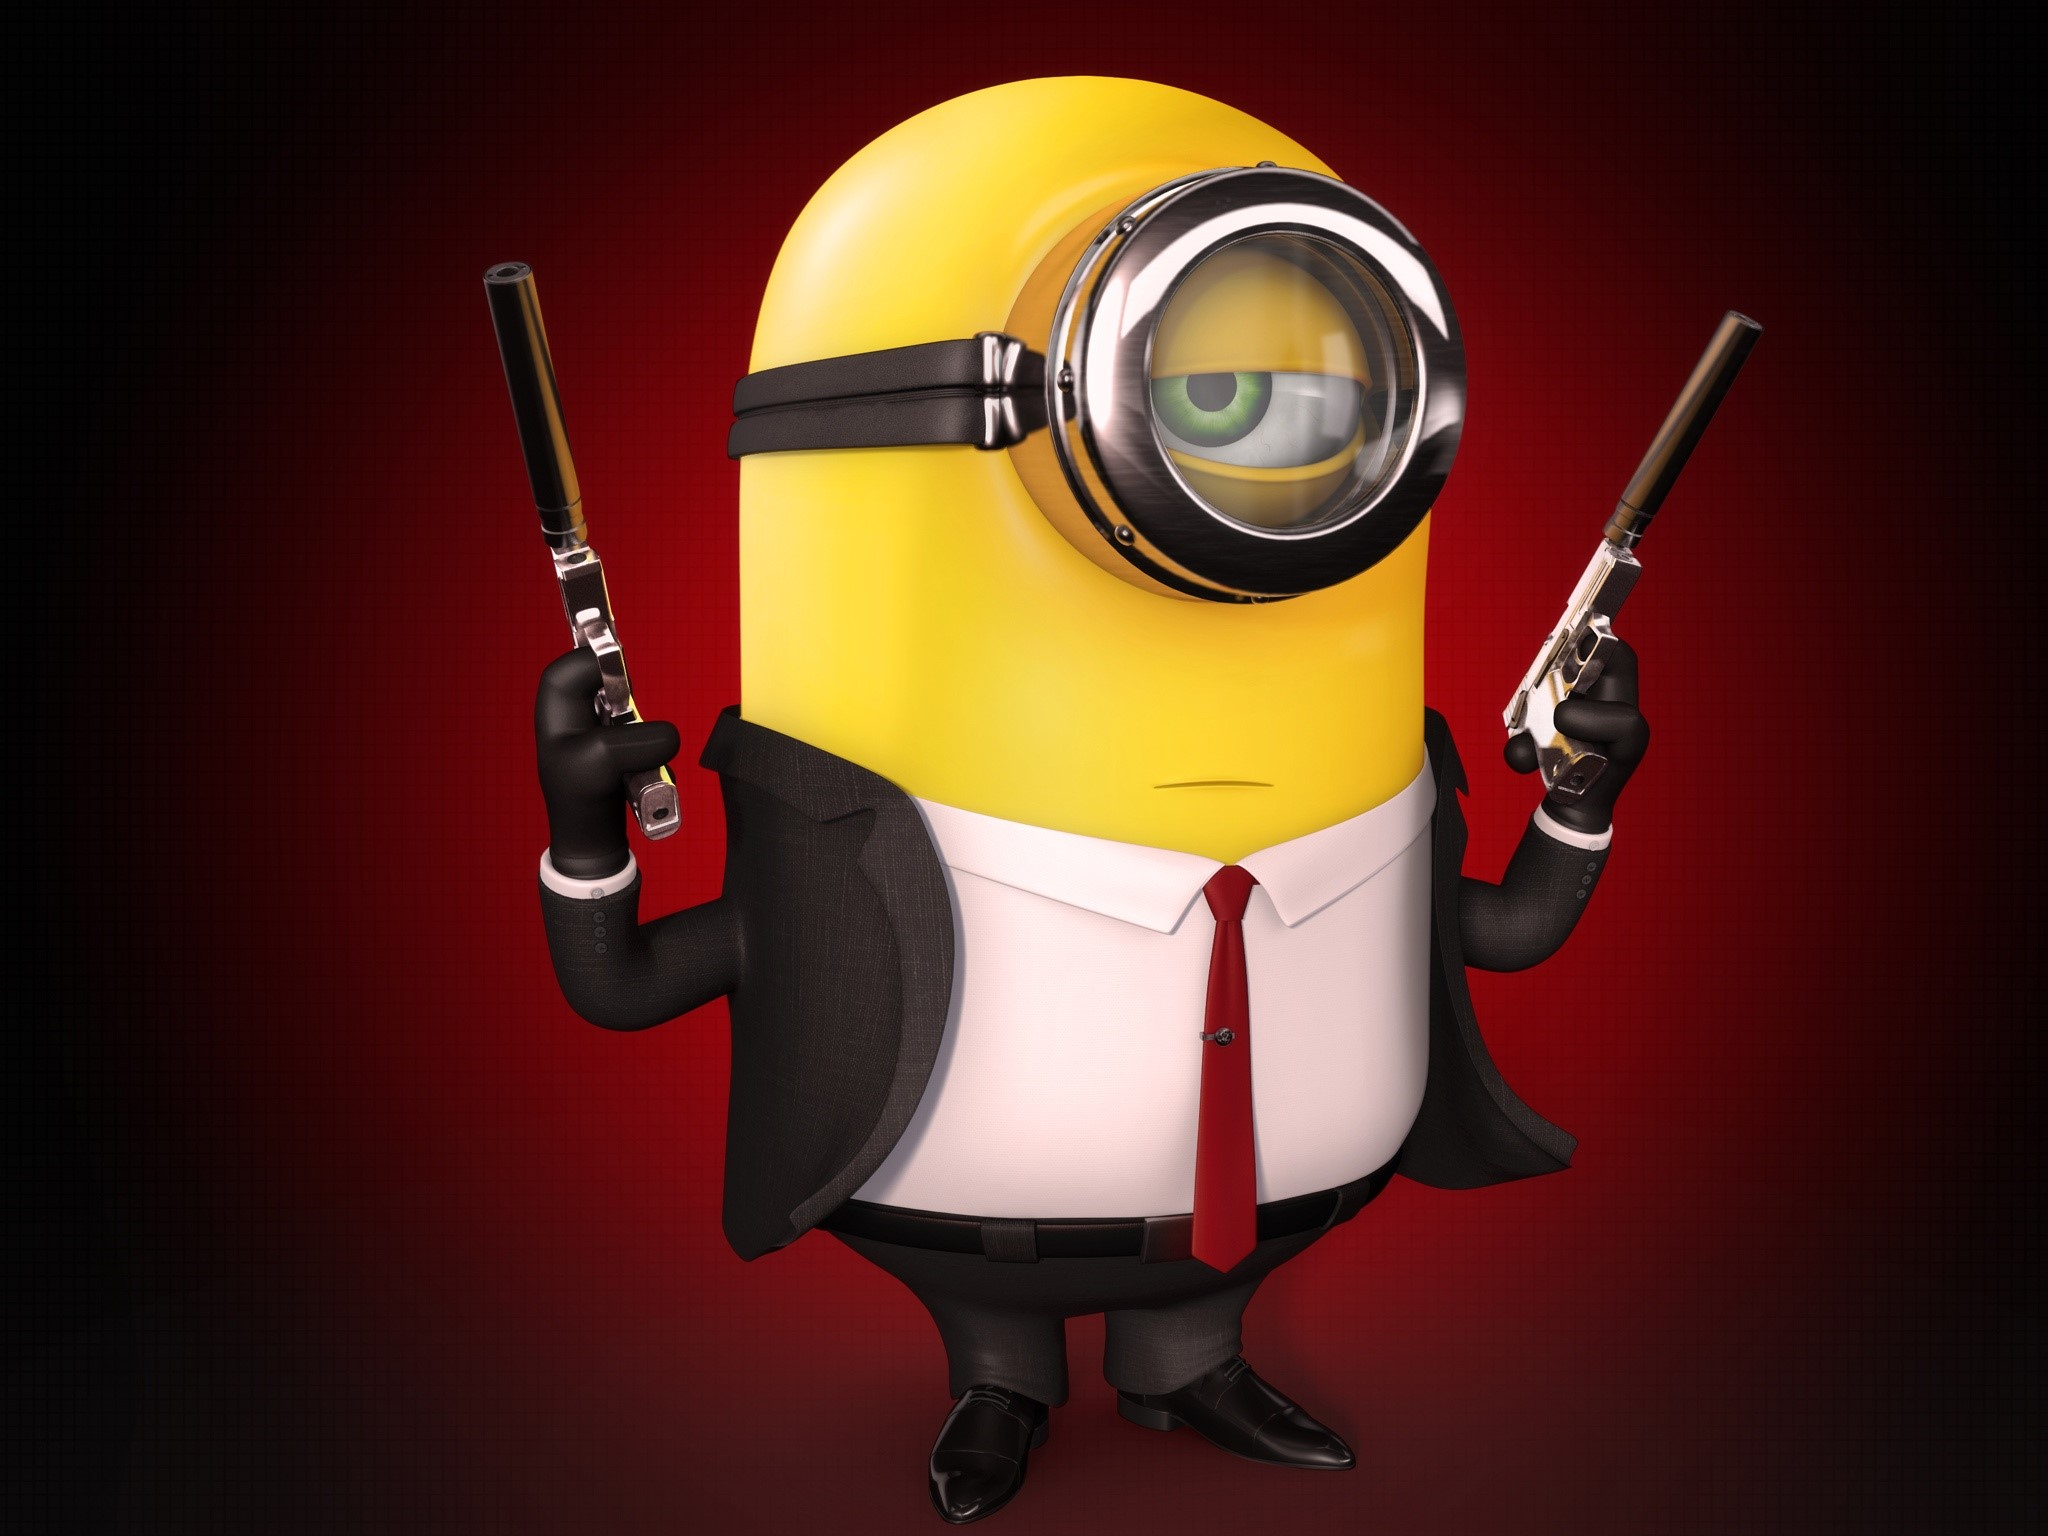 Wallpaper Minion Hitman